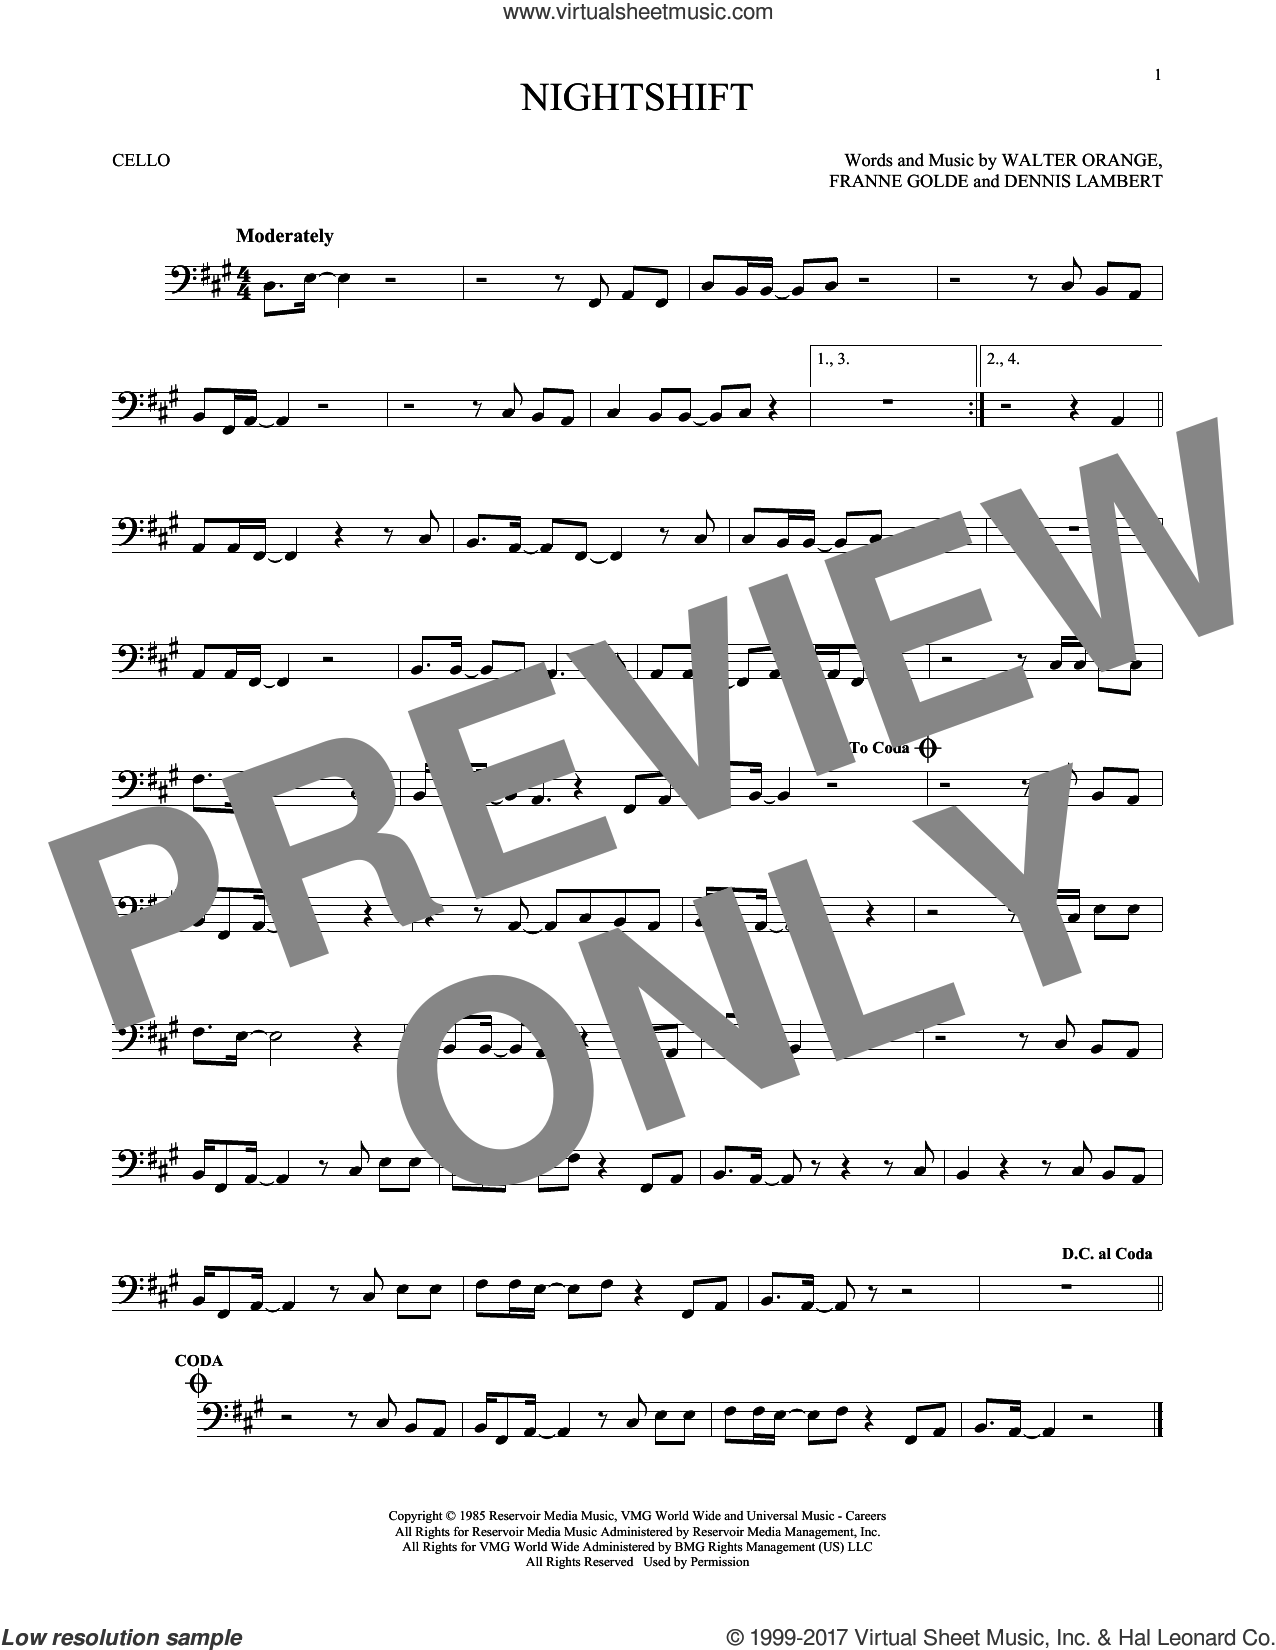 Nightshift sheet music for cello solo by Dennis Lambert, The Commodores, Franne Golde and Walter Orange, intermediate skill level